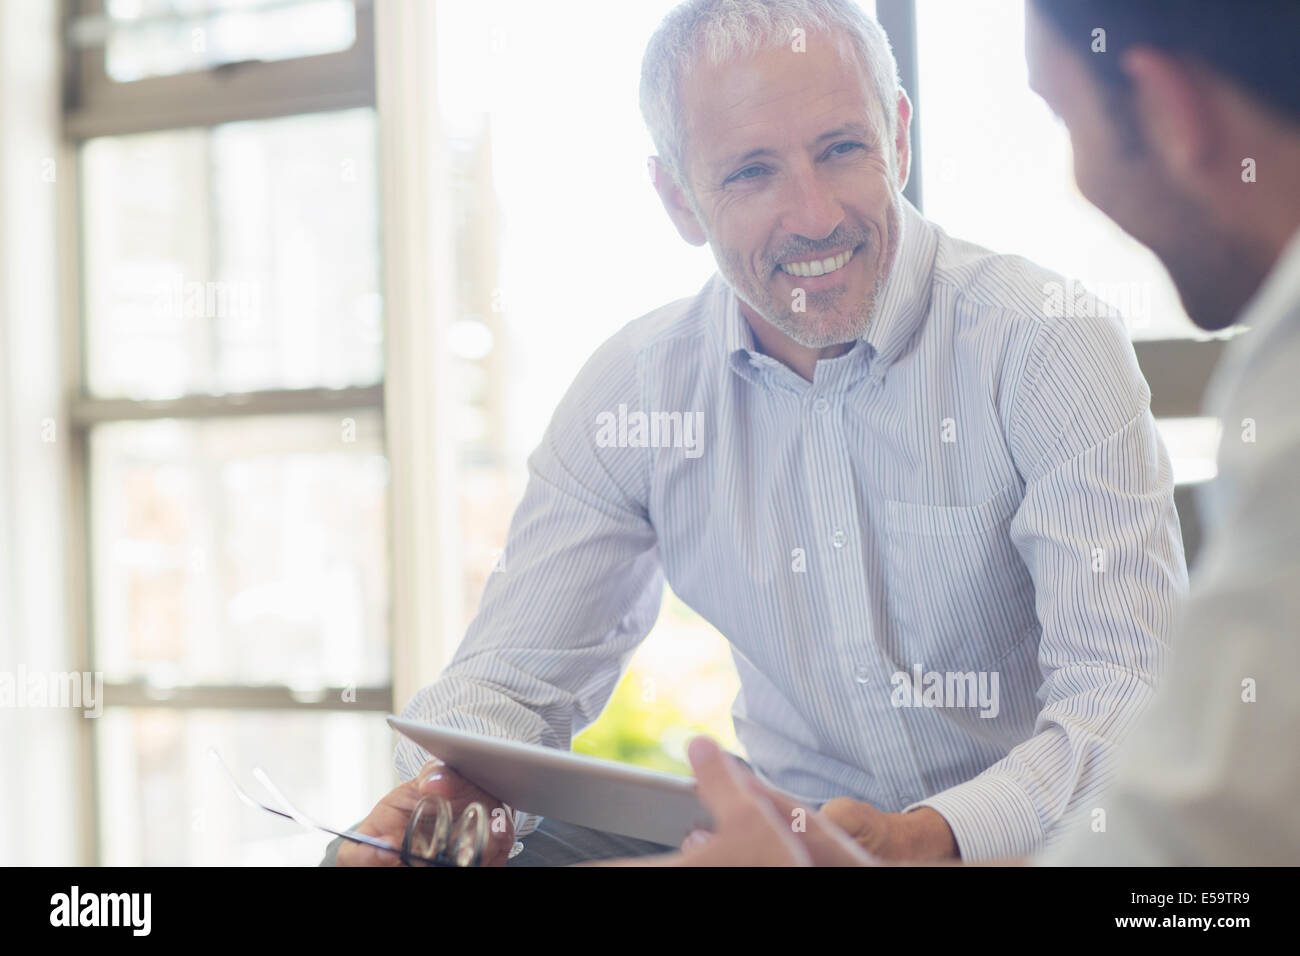 Businessmen laughing together in office - Stock Image